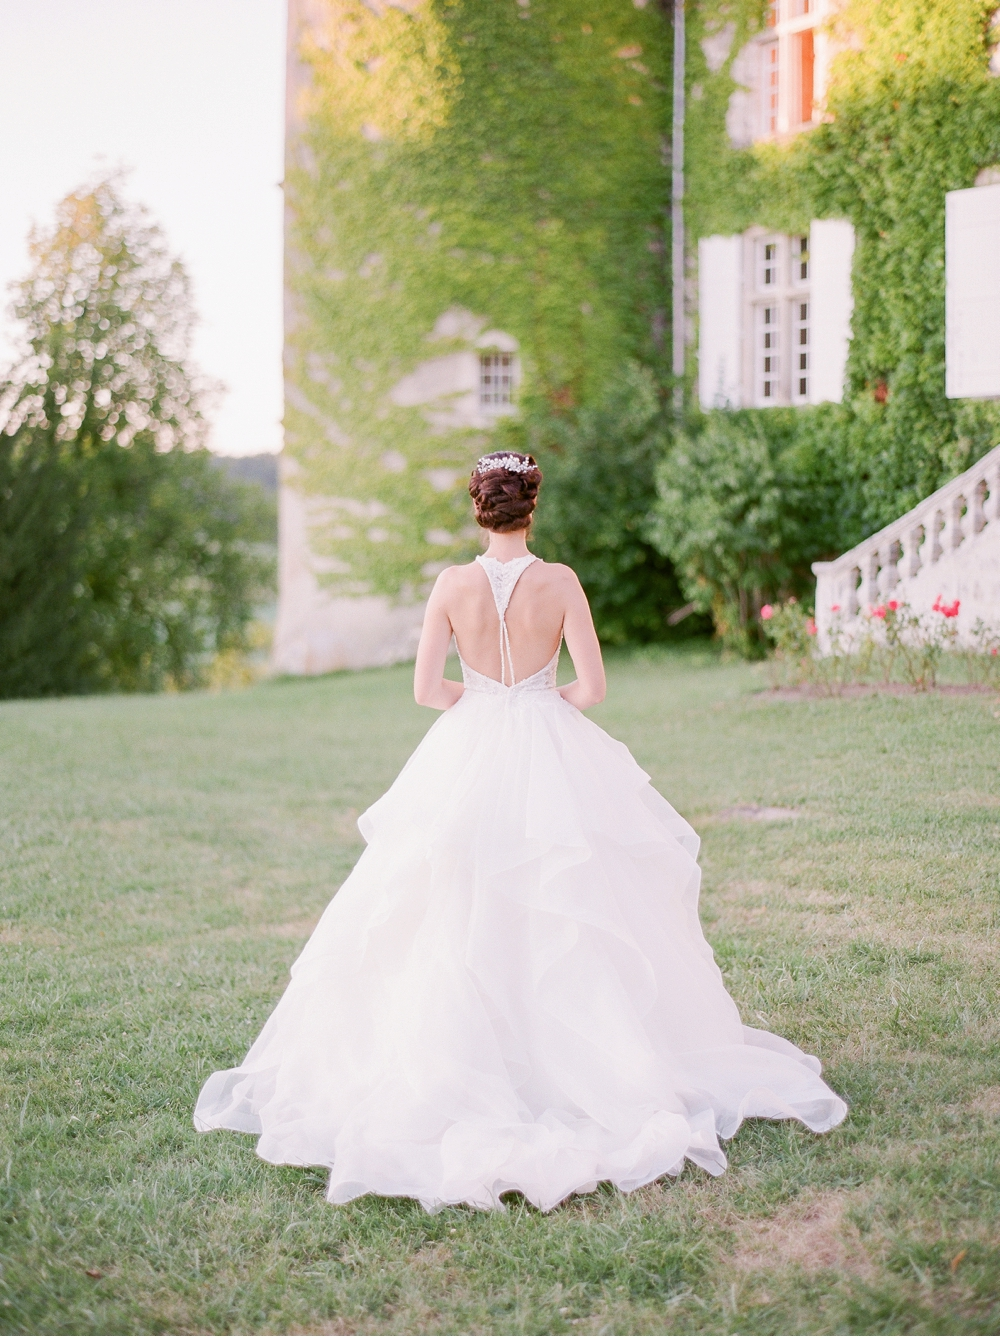 Wedding_Photographer_France_Provence_Castle_Wedding©MadalinaSheldon__0025.jpg